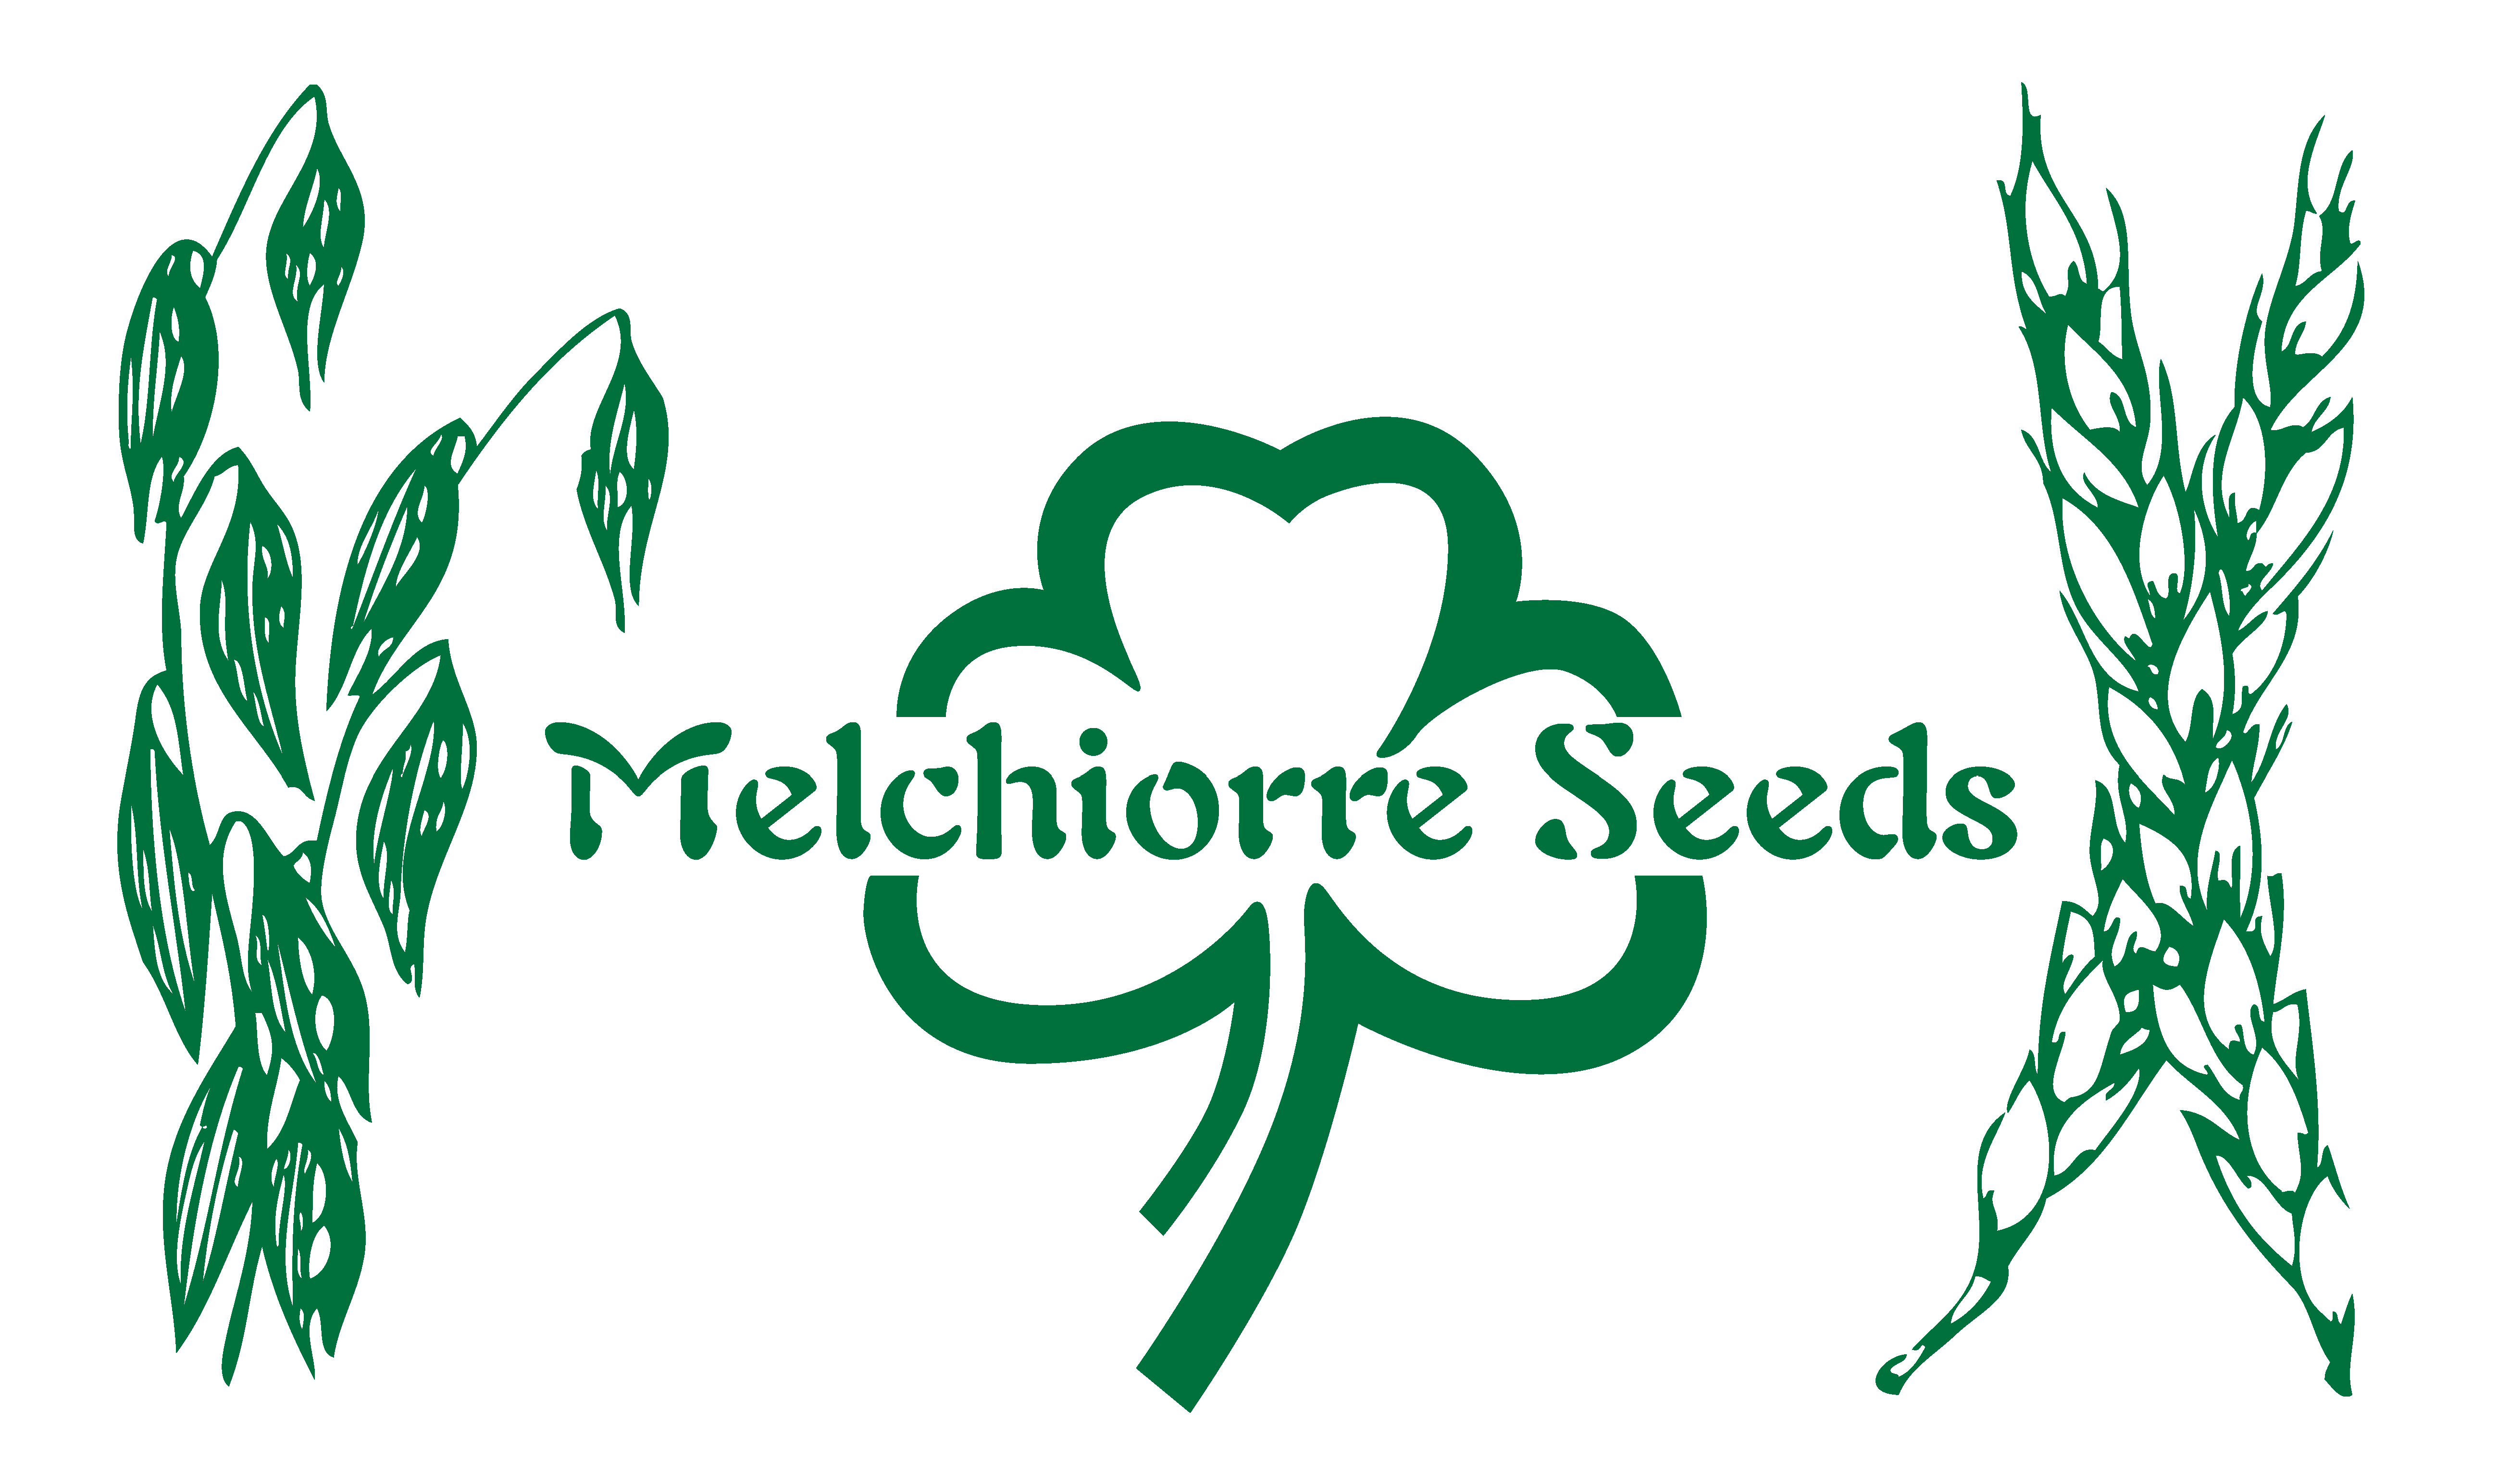 Melchiorre Seeds Website